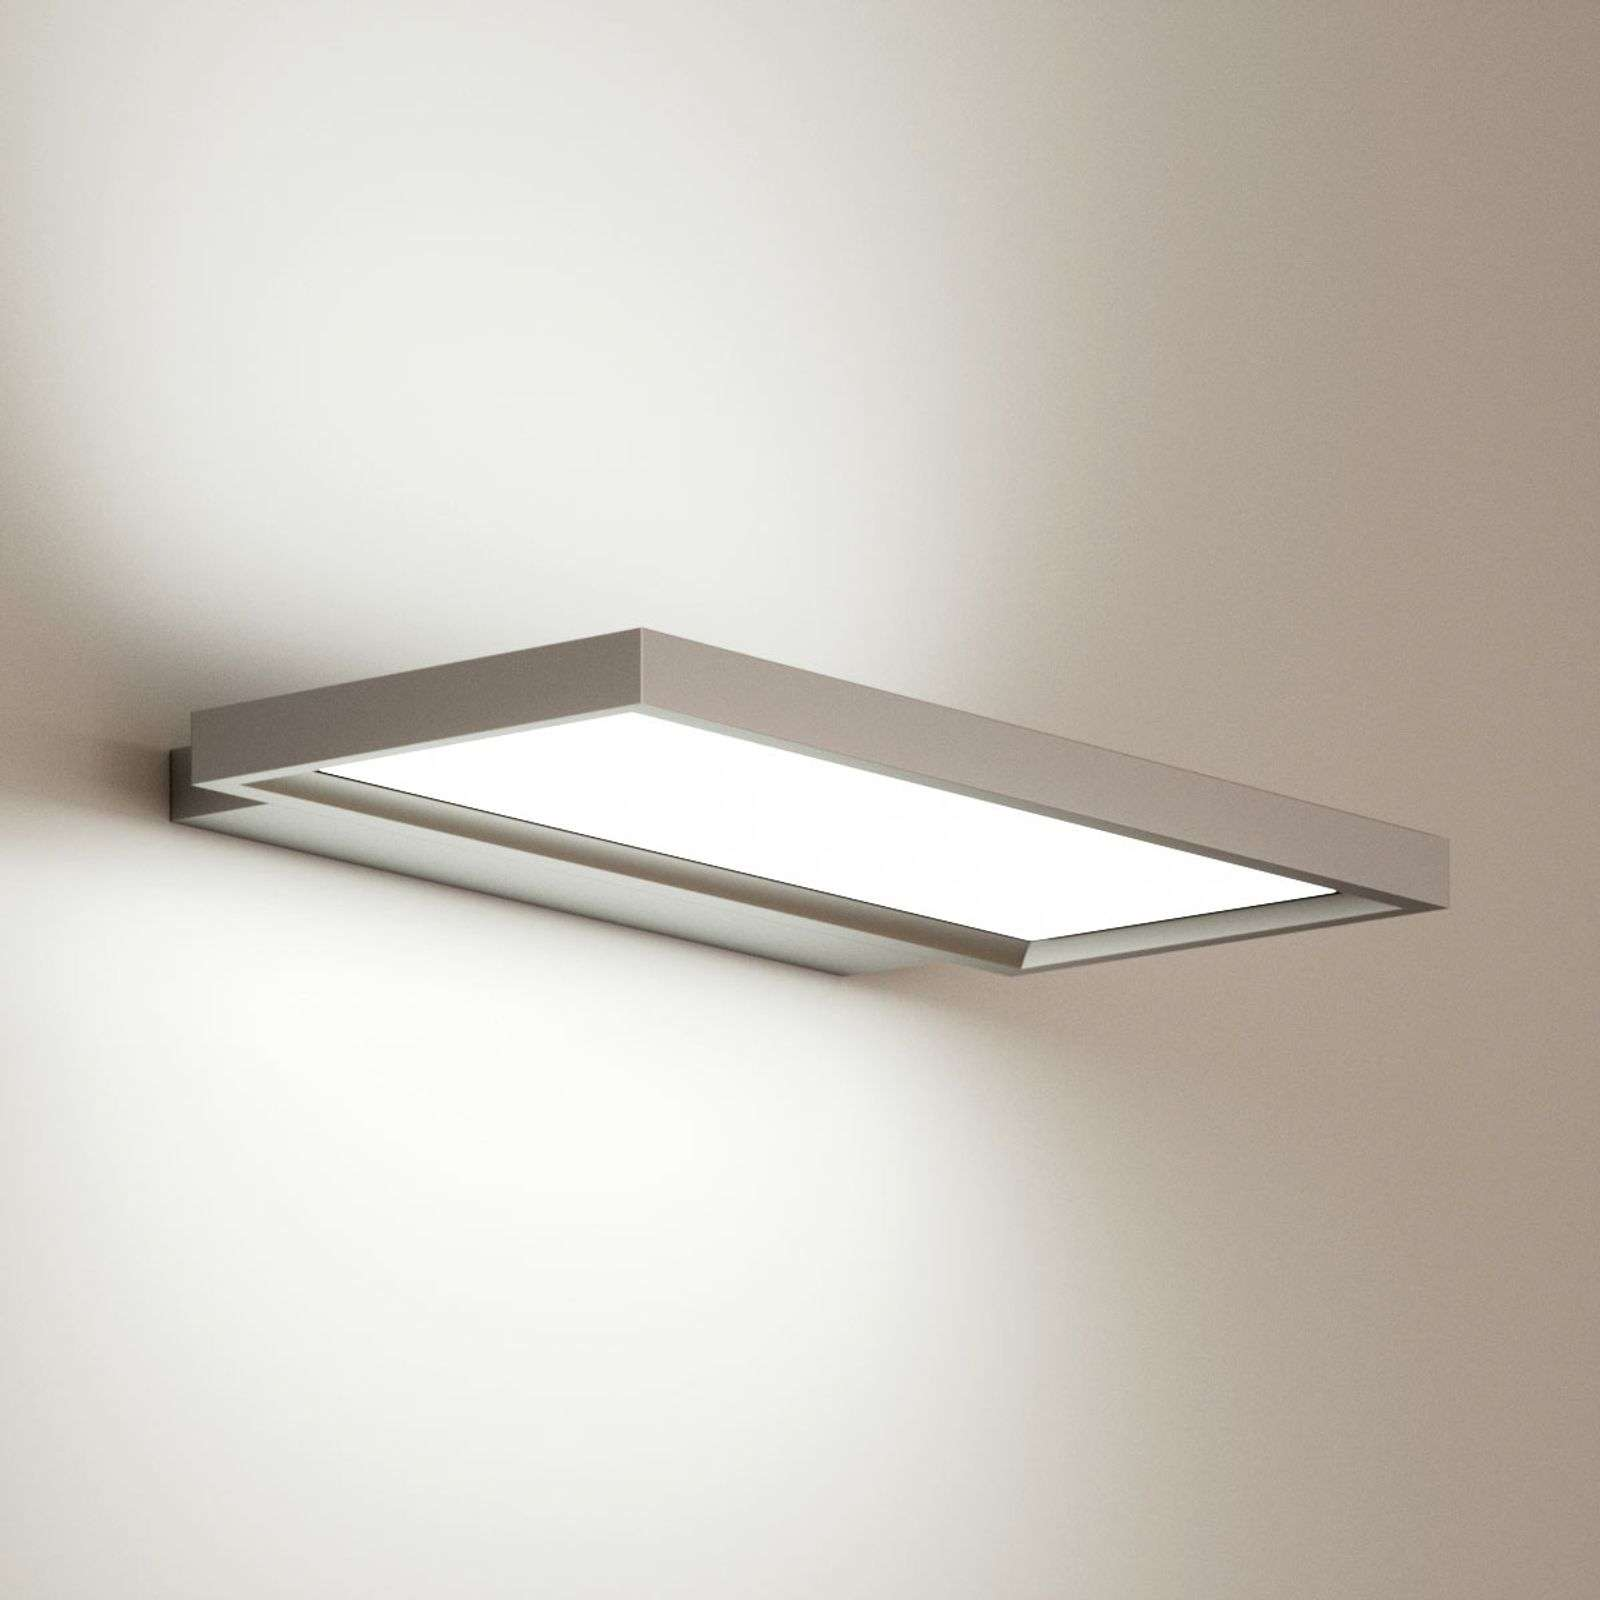 Applique Rick da ufficio, LED a luce neutra